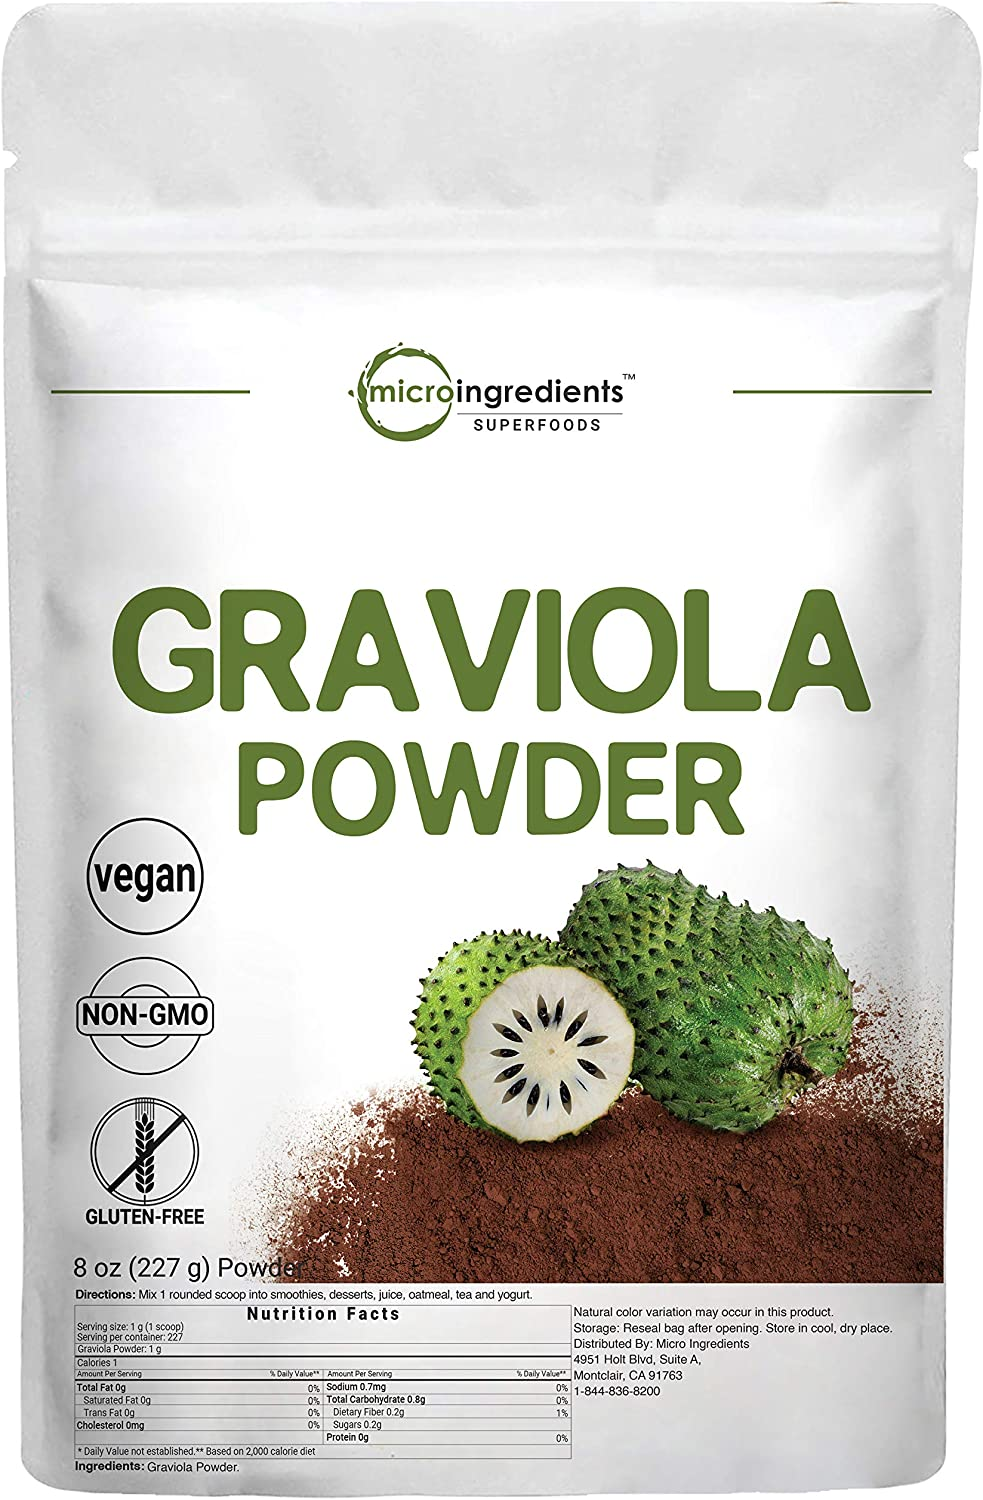 Pure Graviola Powder, 8 Ounce, for Healthy Skin and Cell Growth, Non-GMO, No Gluten